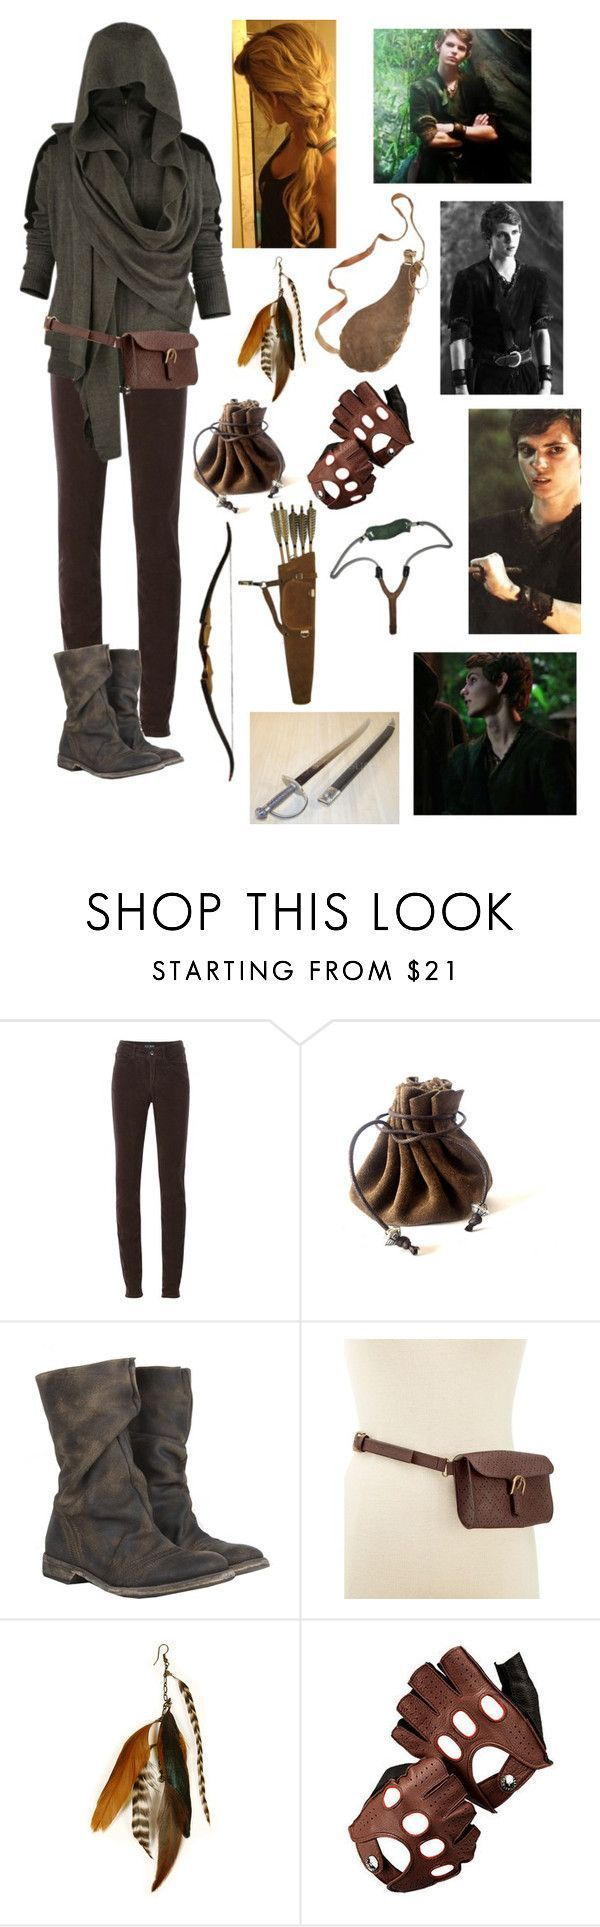 """Lost Girl - Peter Pan"" by blackwidow321 ❤️ liked on Polyvore featuring Armani Jeans, AllSaints, Style & Co., Gilded Lily Goods, Aspinal of London, Once Upon a Time, women's clothing, women, female and woman"